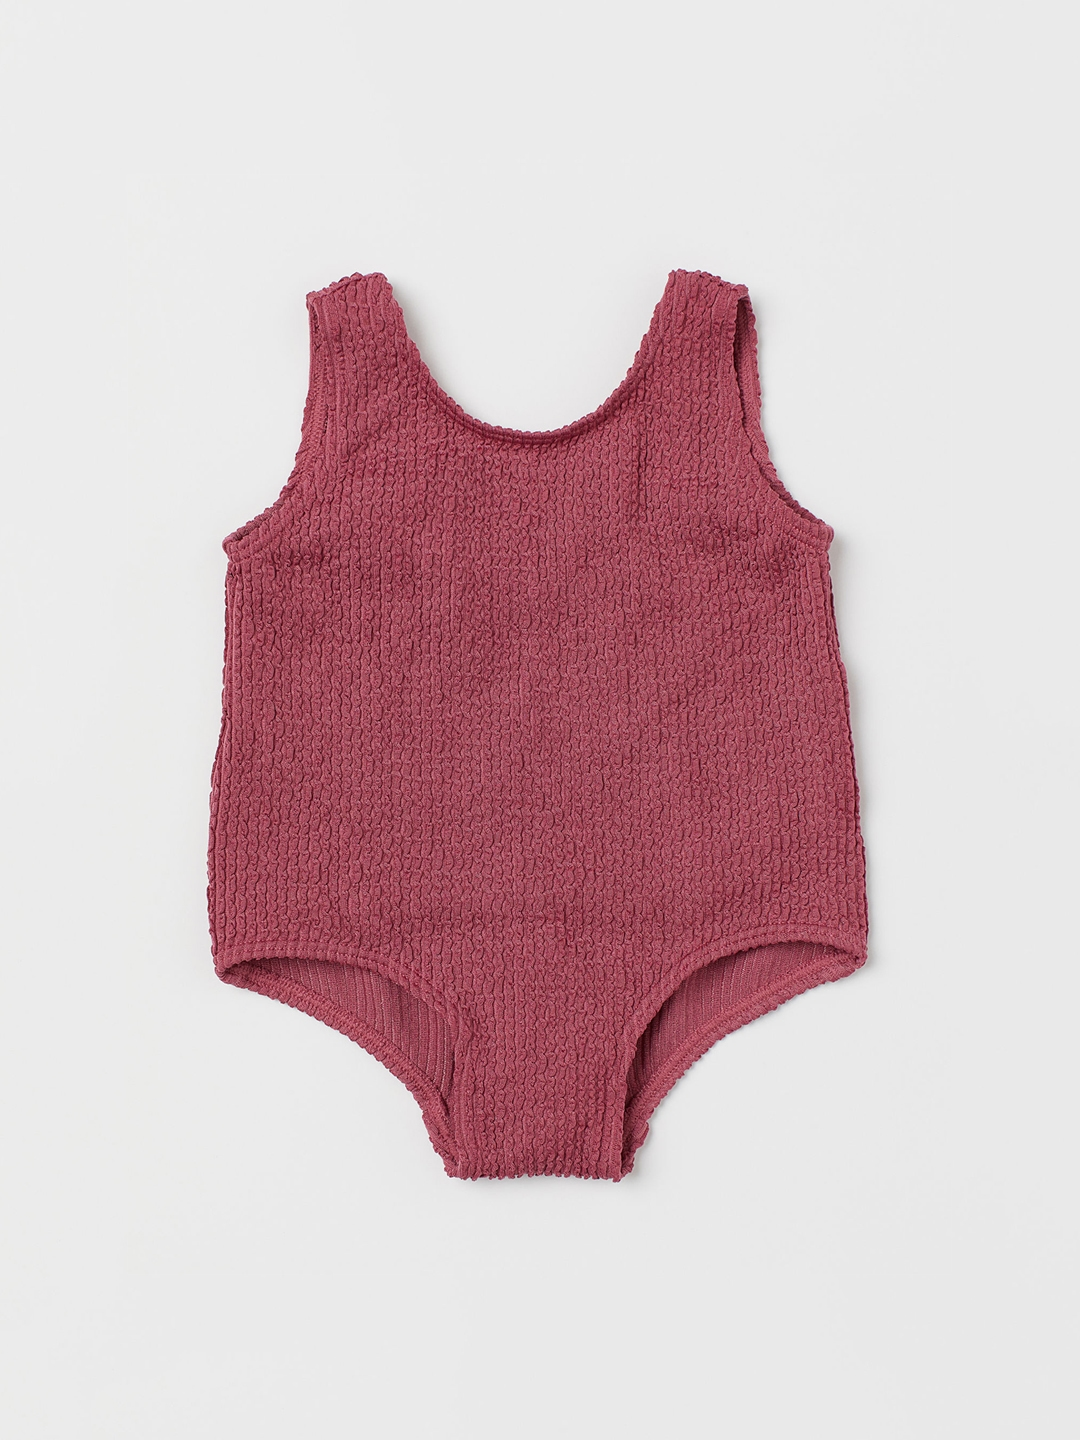 H M Girls Pink Solid Swimsuit